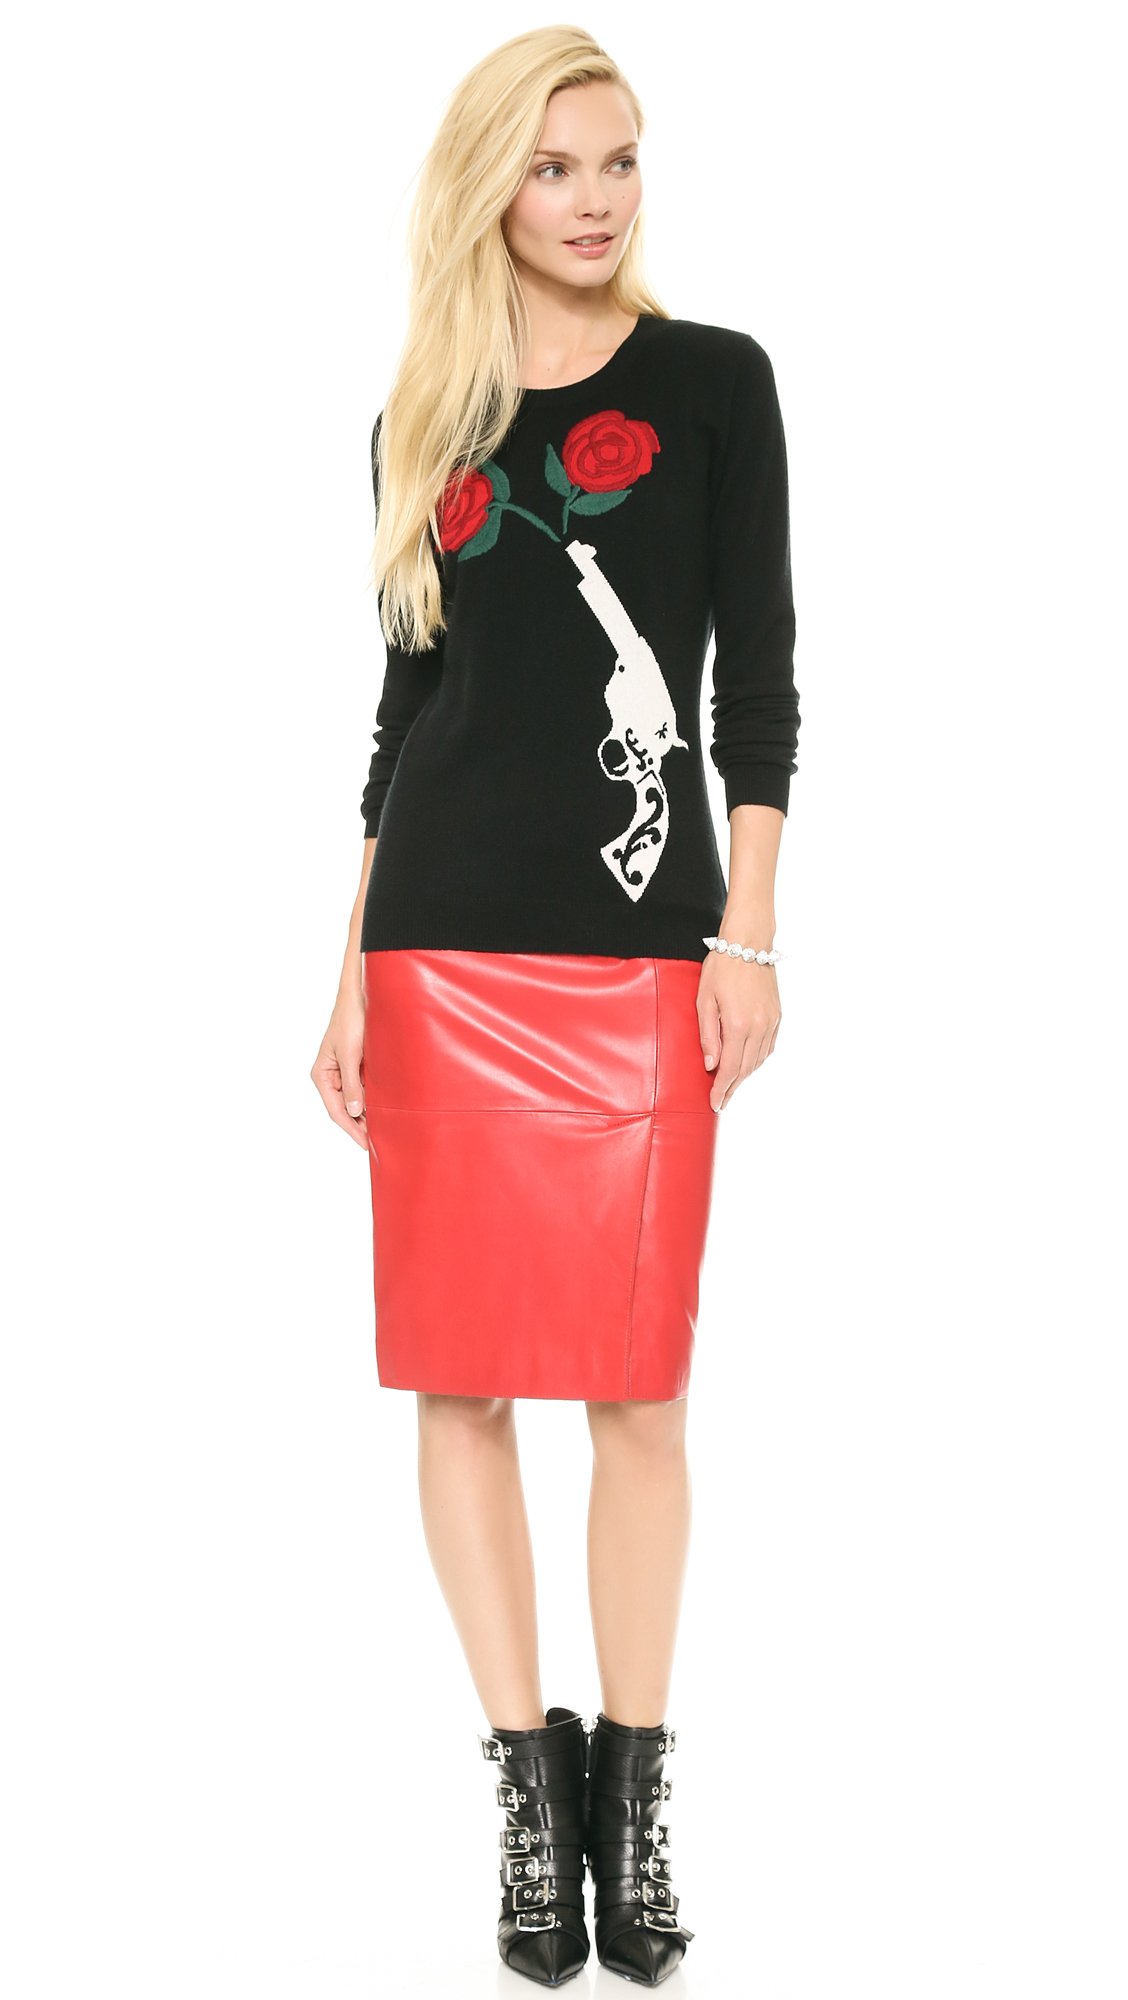 Moschino Cheap and Chic Leather Skirt Red in Red | Lyst